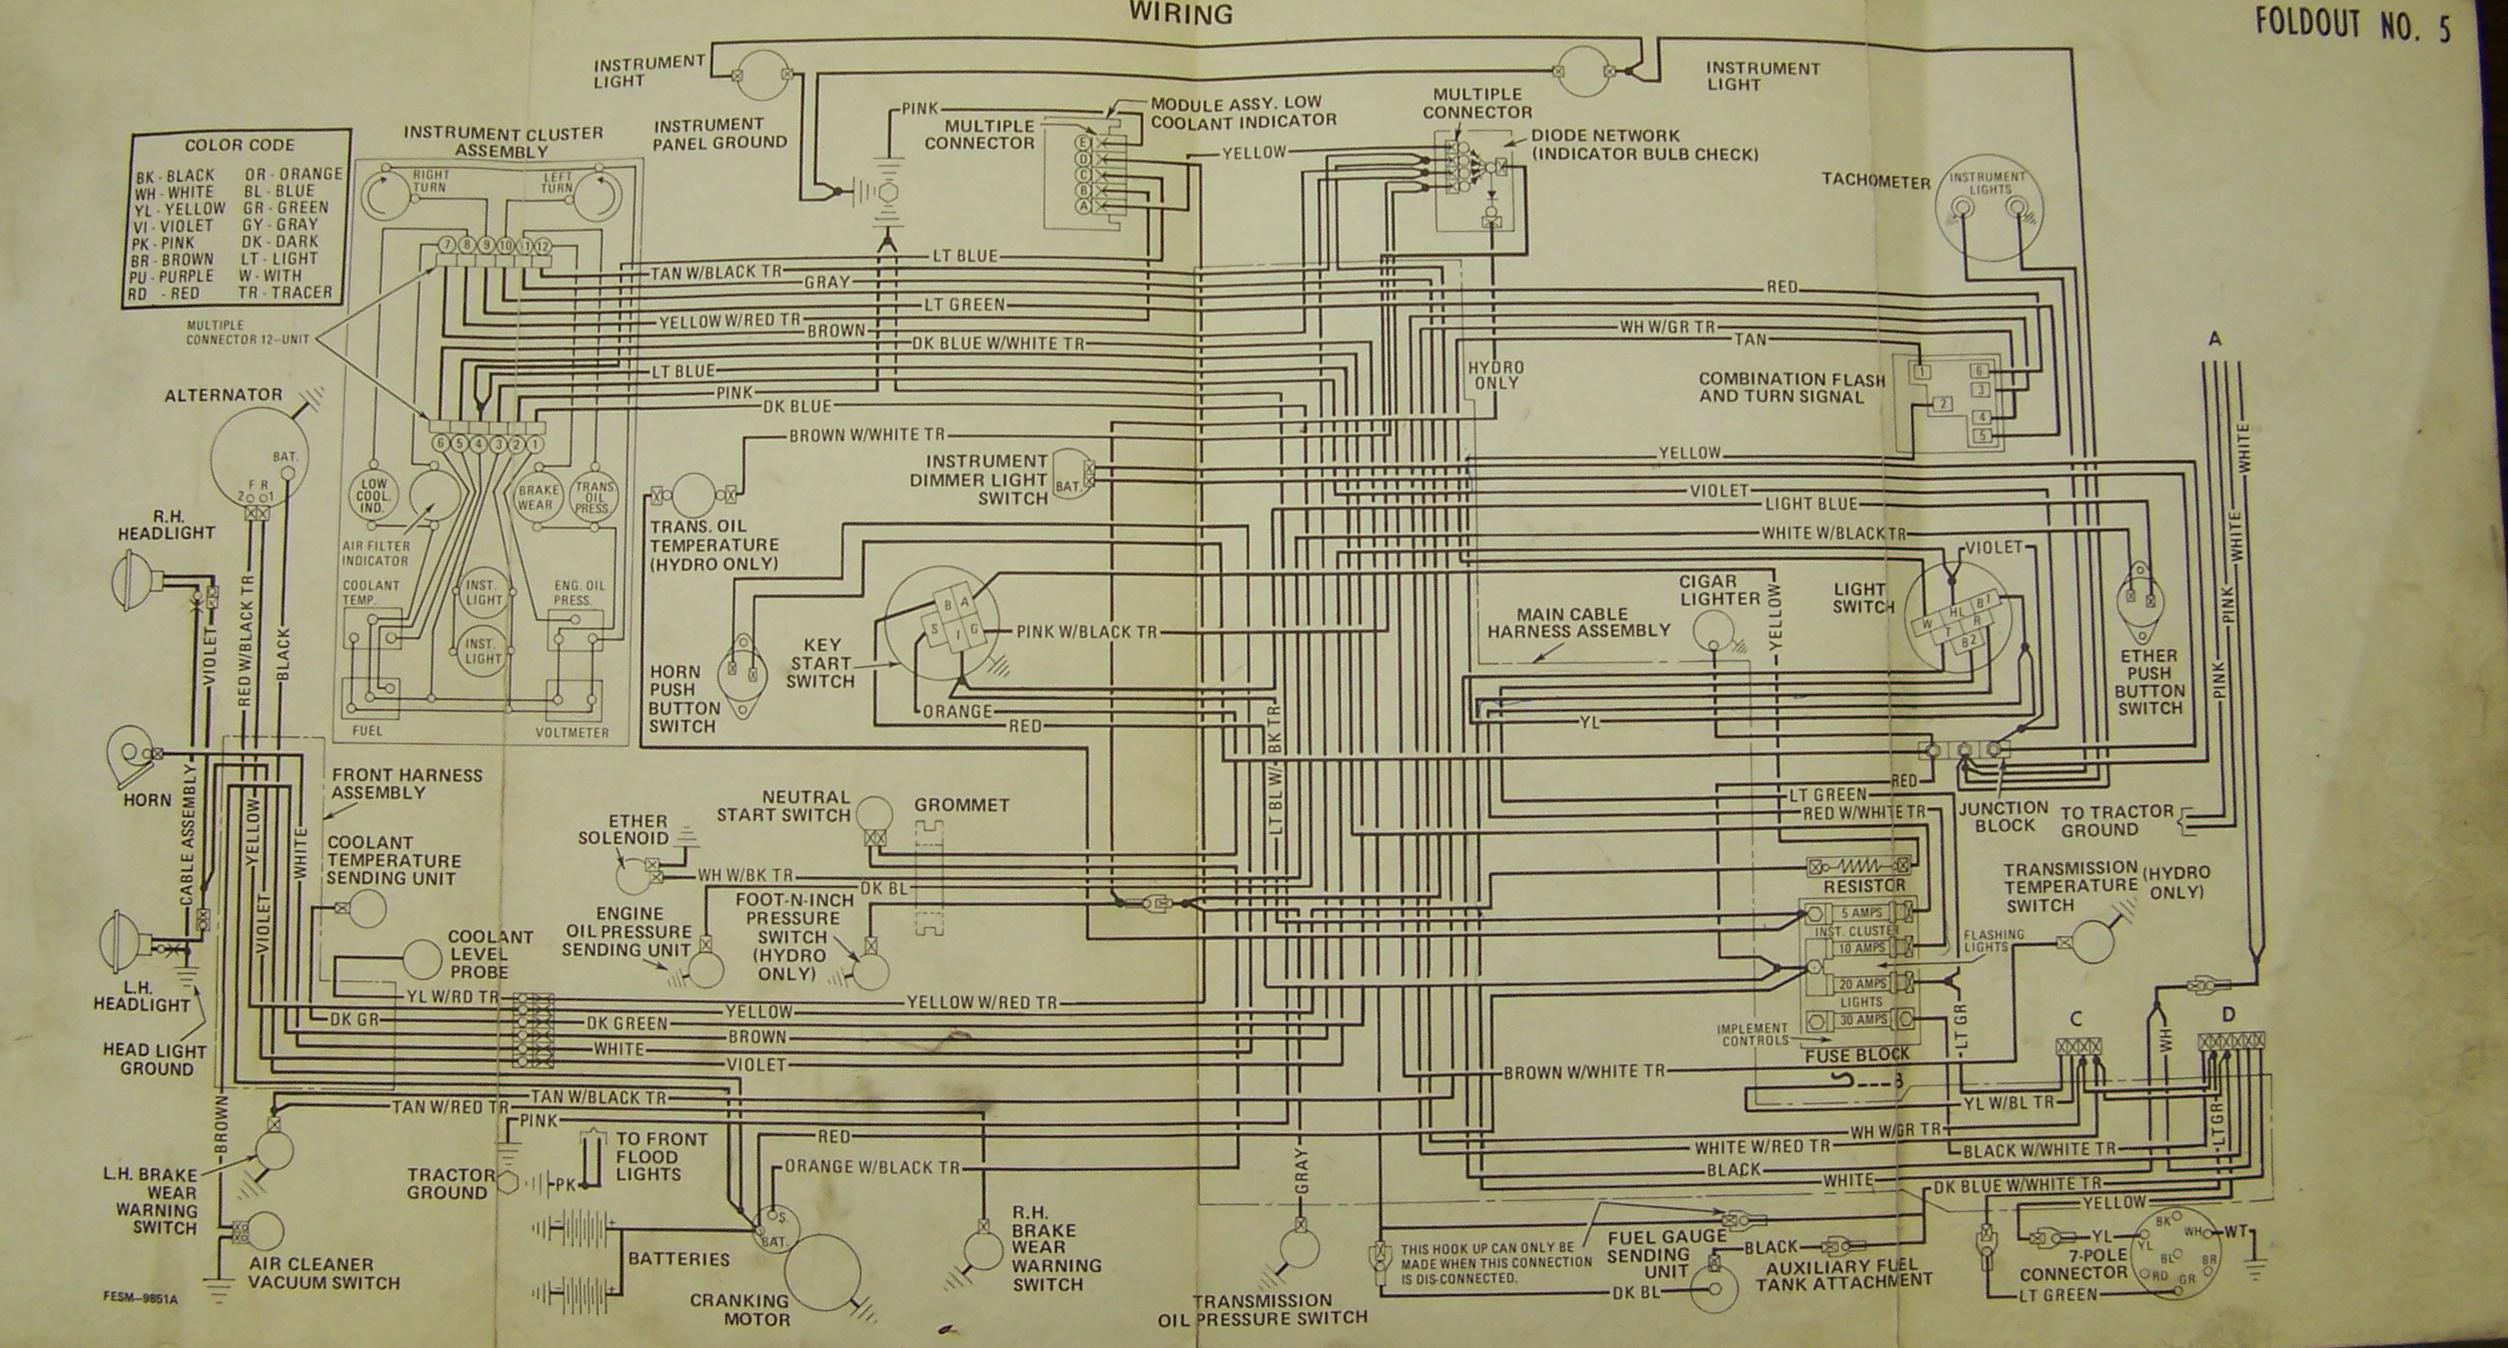 86series5 ih 574 wiring diagram case 430 tractor wiring diagram \u2022 wiring International 4300 Wiring Diagram Schematics at pacquiaovsvargaslive.co